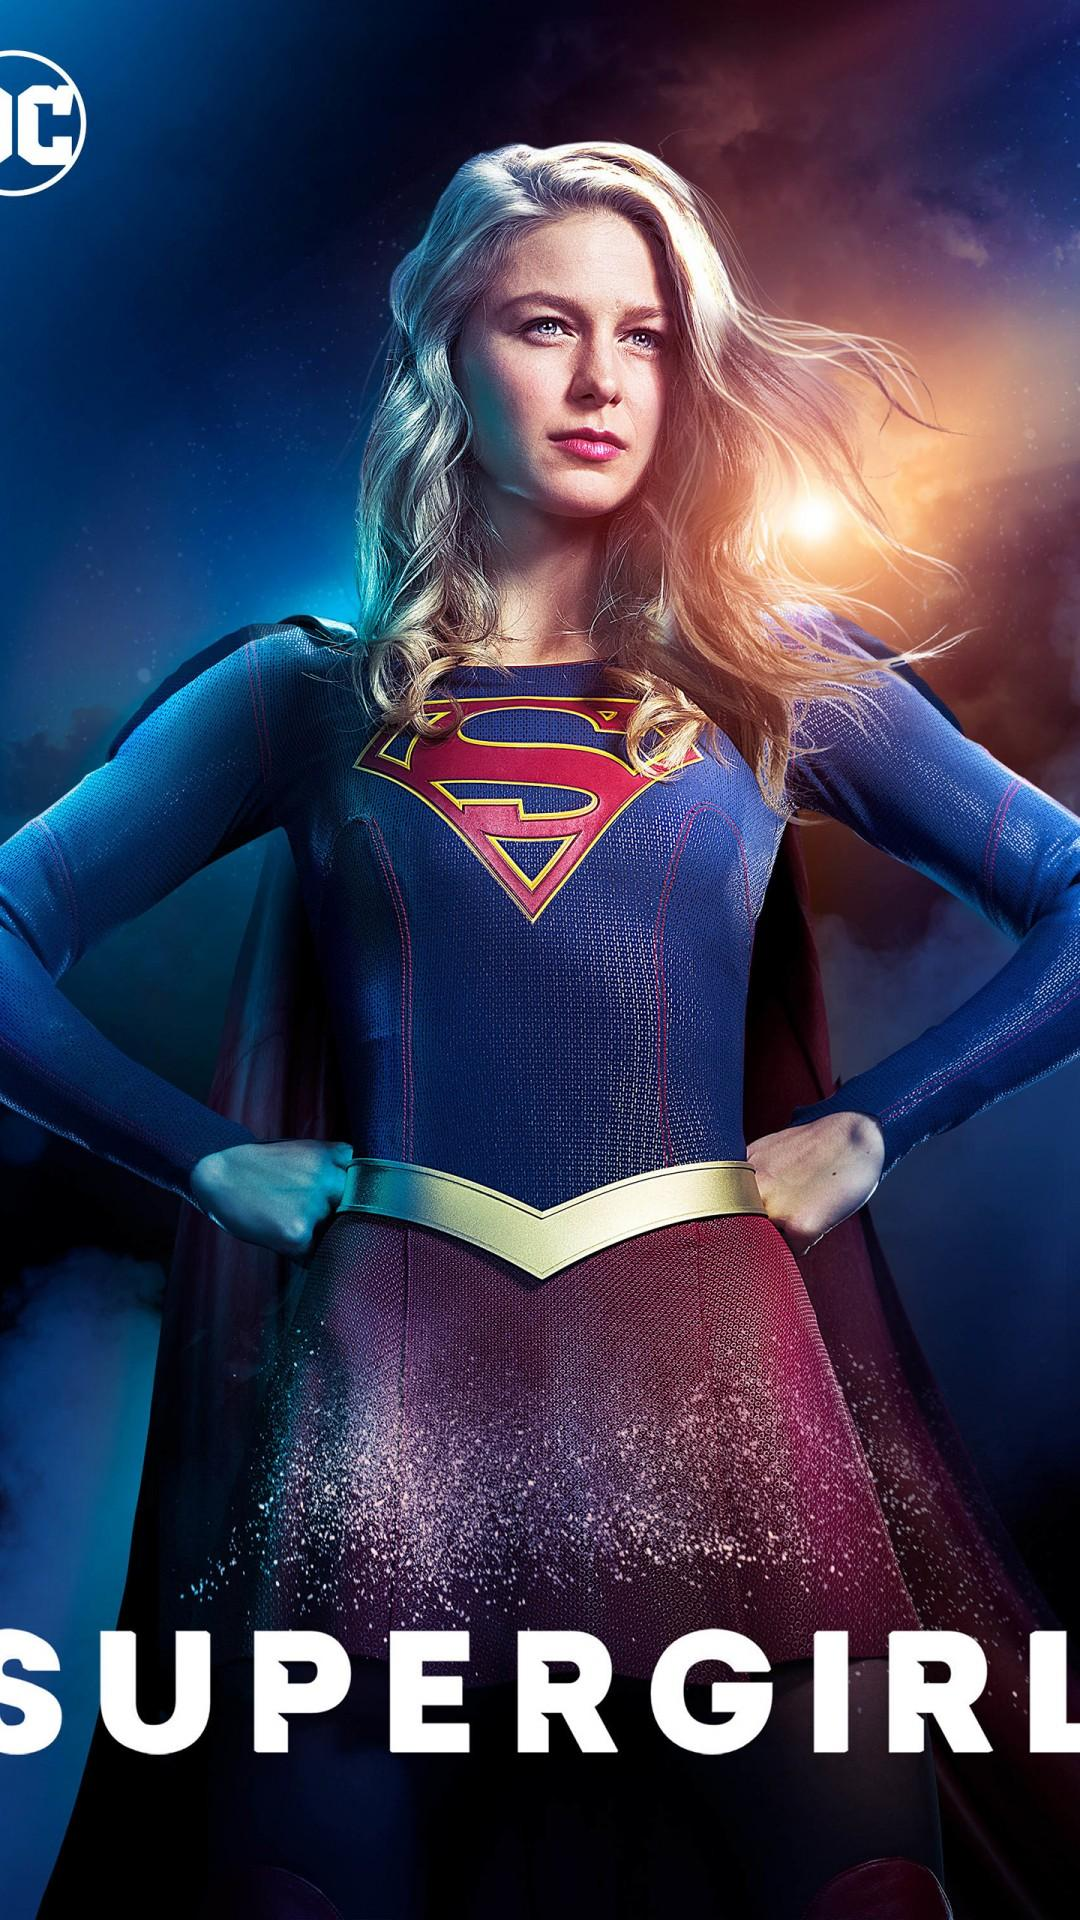 Supergirl Season 5 Phone Wallpapers Wallpaper Cave